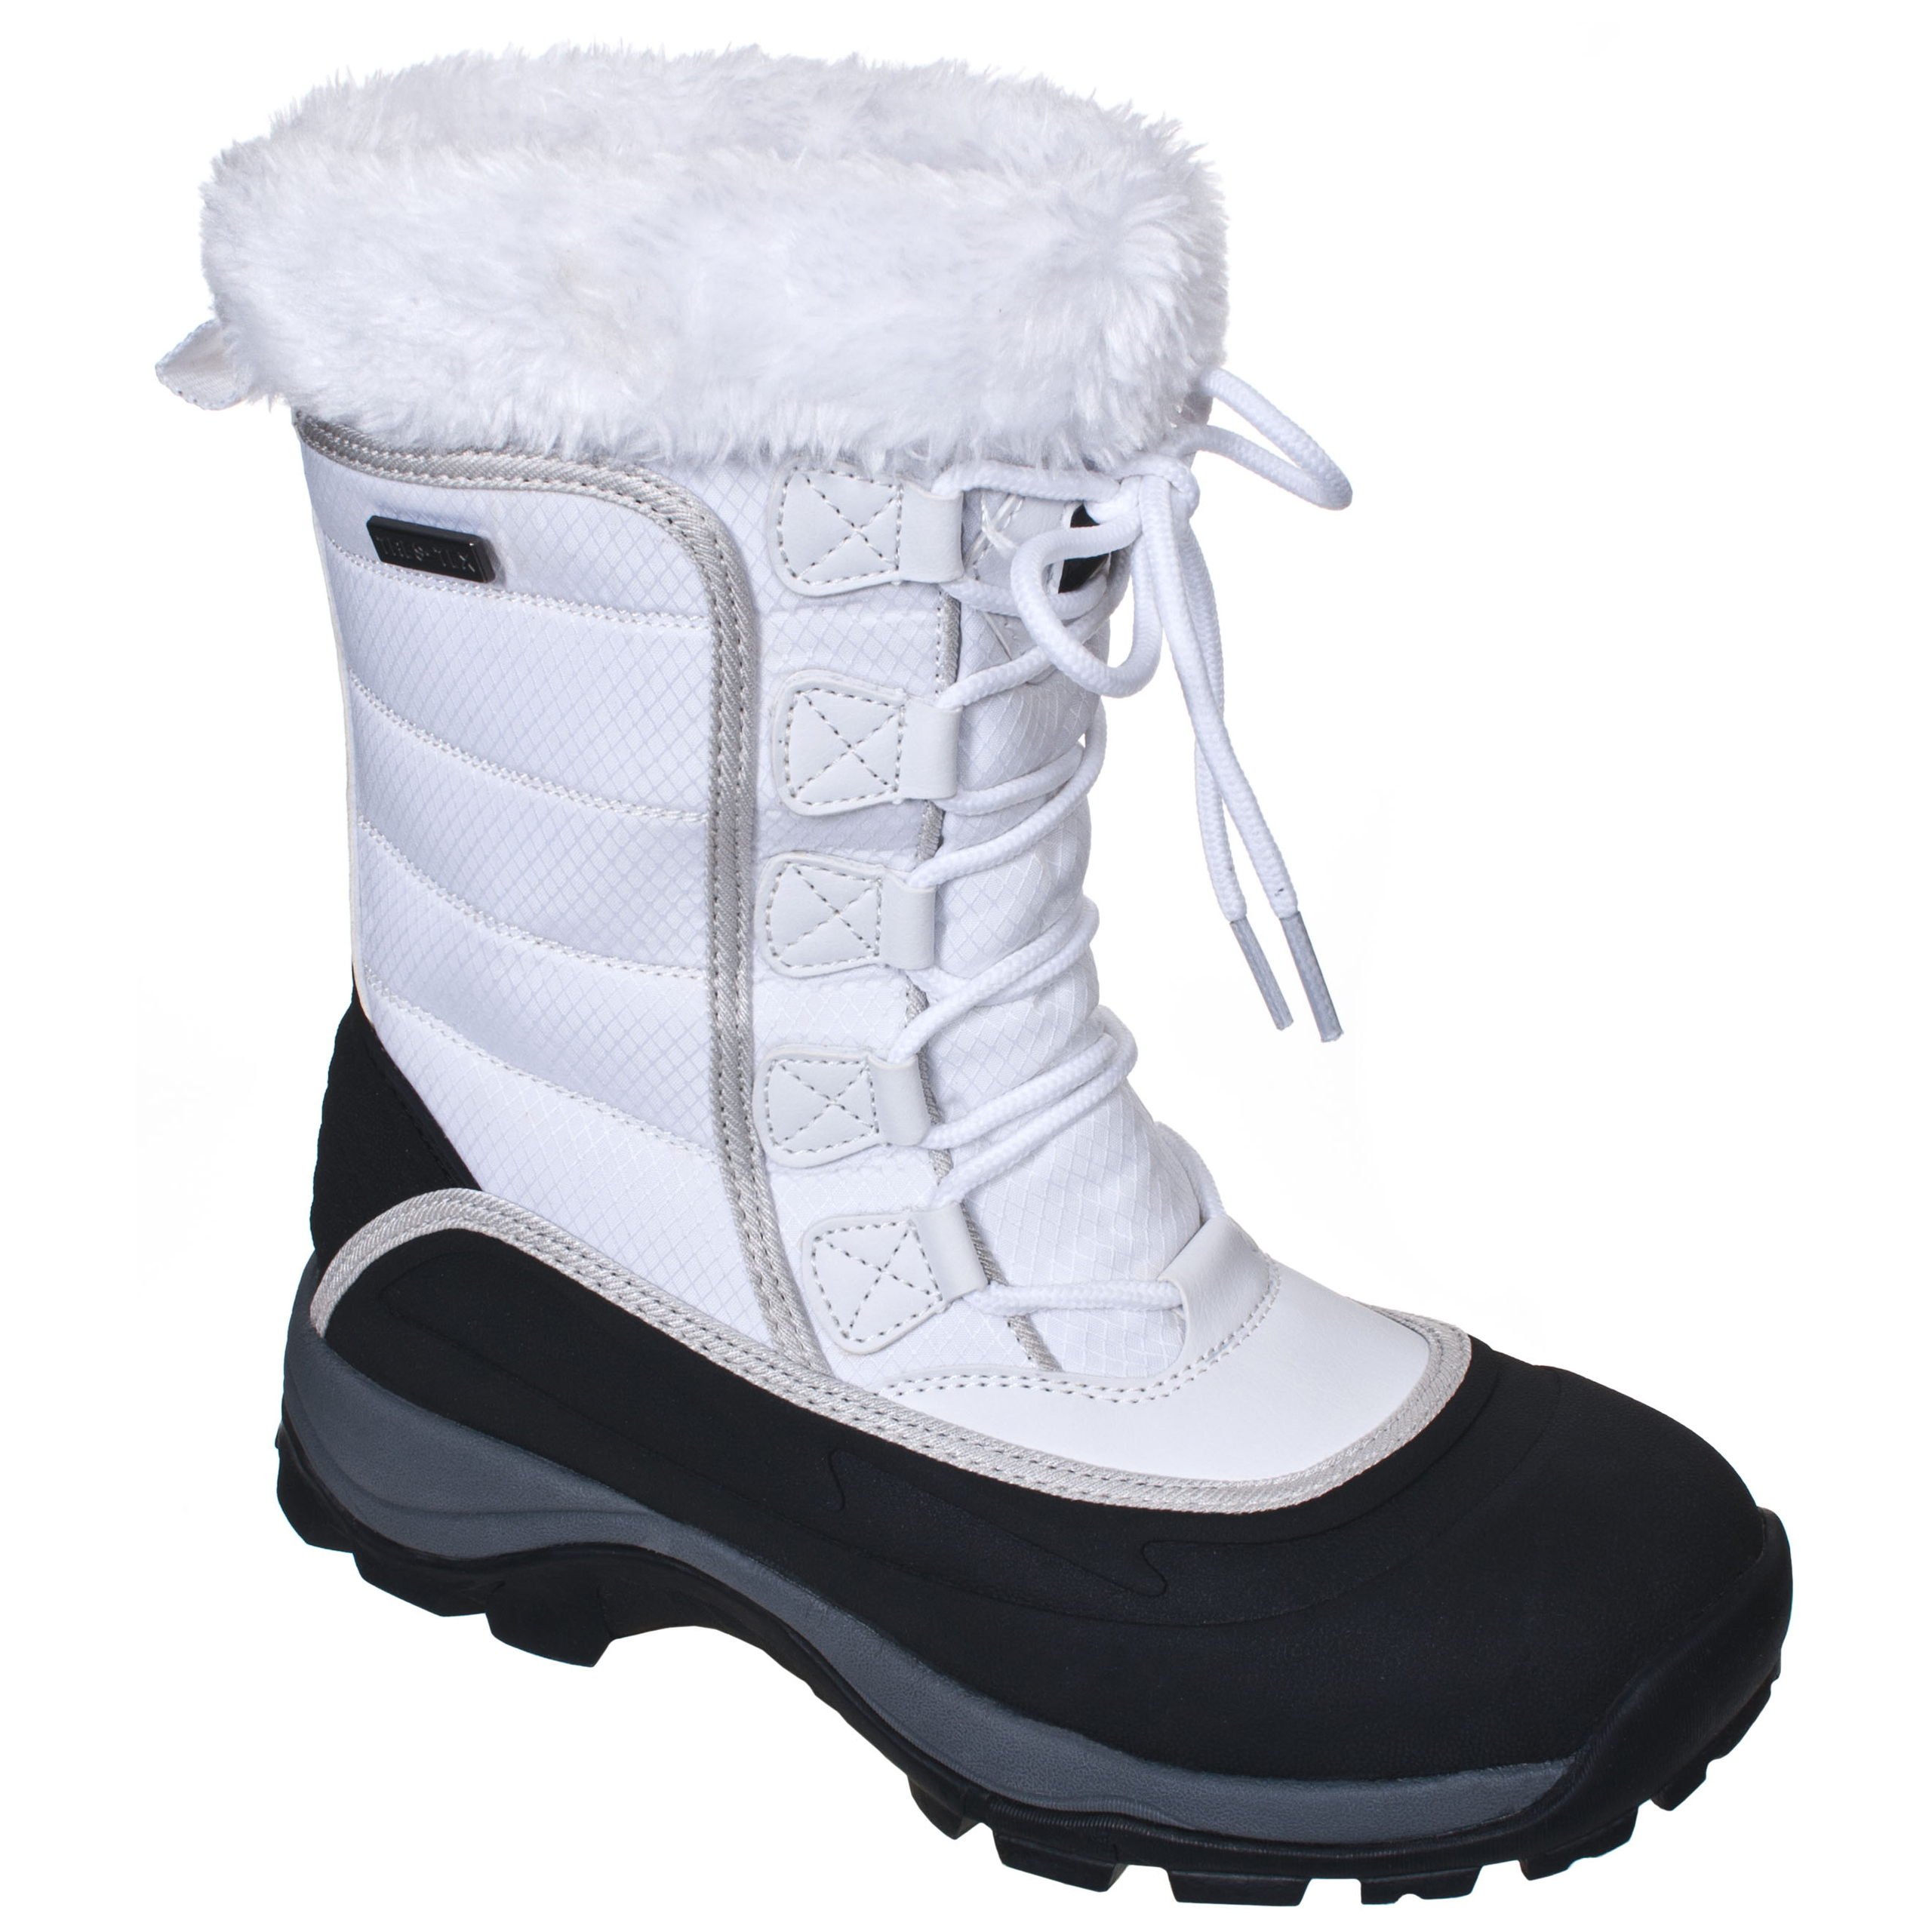 Women Winter Boots. Showing 48 of results that match your query. Search Product Result. Women Boots Slip-On Soft Snow Boots Round Toe Flat Winter Fur Ankle Boots BK/ Product Image. Price Womens Flat Casual Winter Warm Faux Fur Snow Ankle Snow Boots SPHP. Clearance. Product Image. Price $ 02 - $